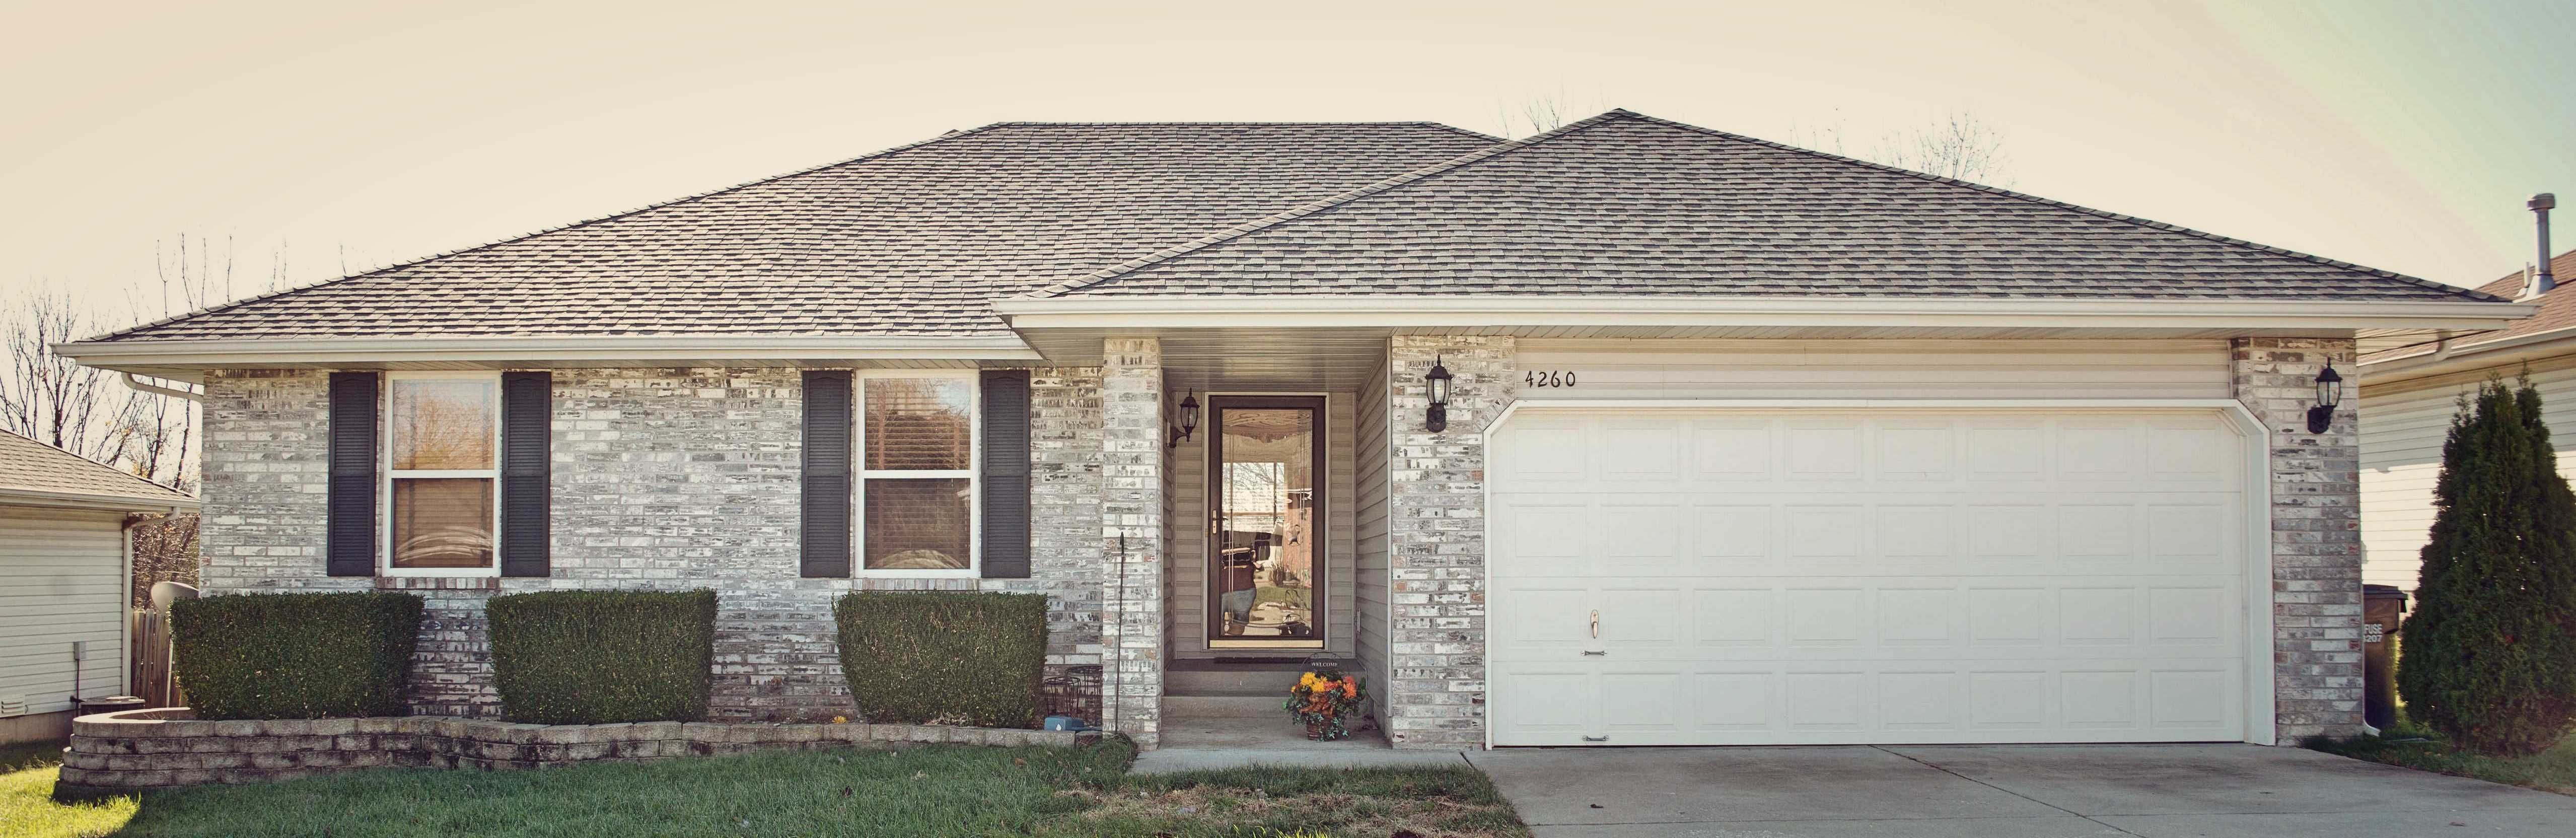 The Benefits Of Installing Seamless Gutters In Springfield Missouri Seamless Gutters Gutters Springfield Missouri